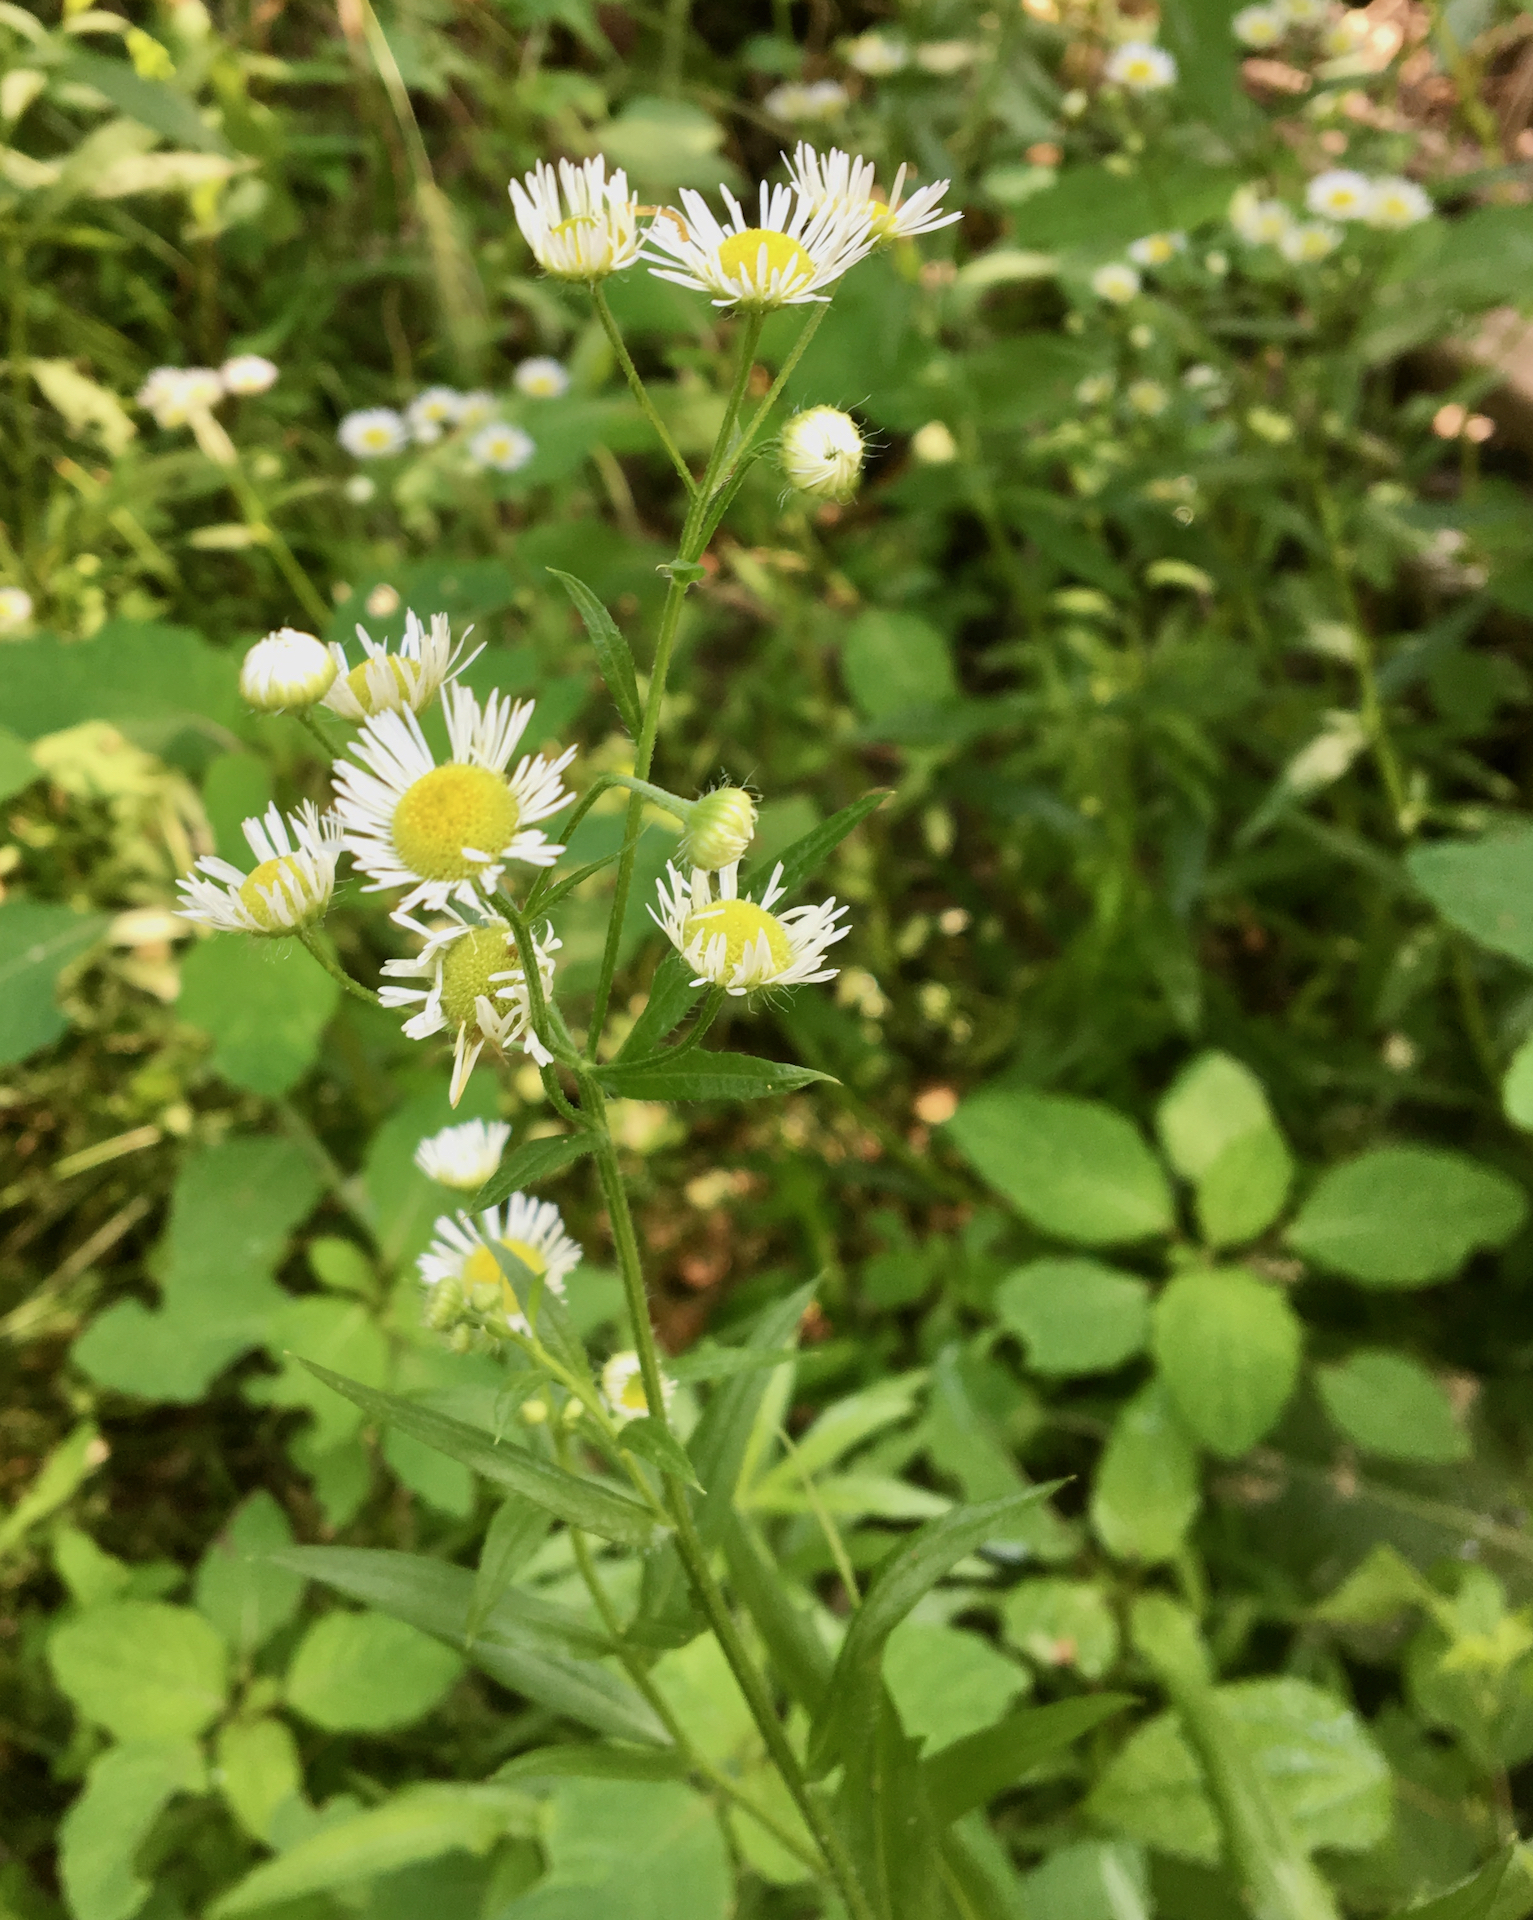 The Scientific Name is Erigeron strigosus var. strigosus. You will likely hear them called Common Rough Fleabane, Lesser Daisy Fleabane, Slender Daisy-fleabane. This picture shows the 1/2